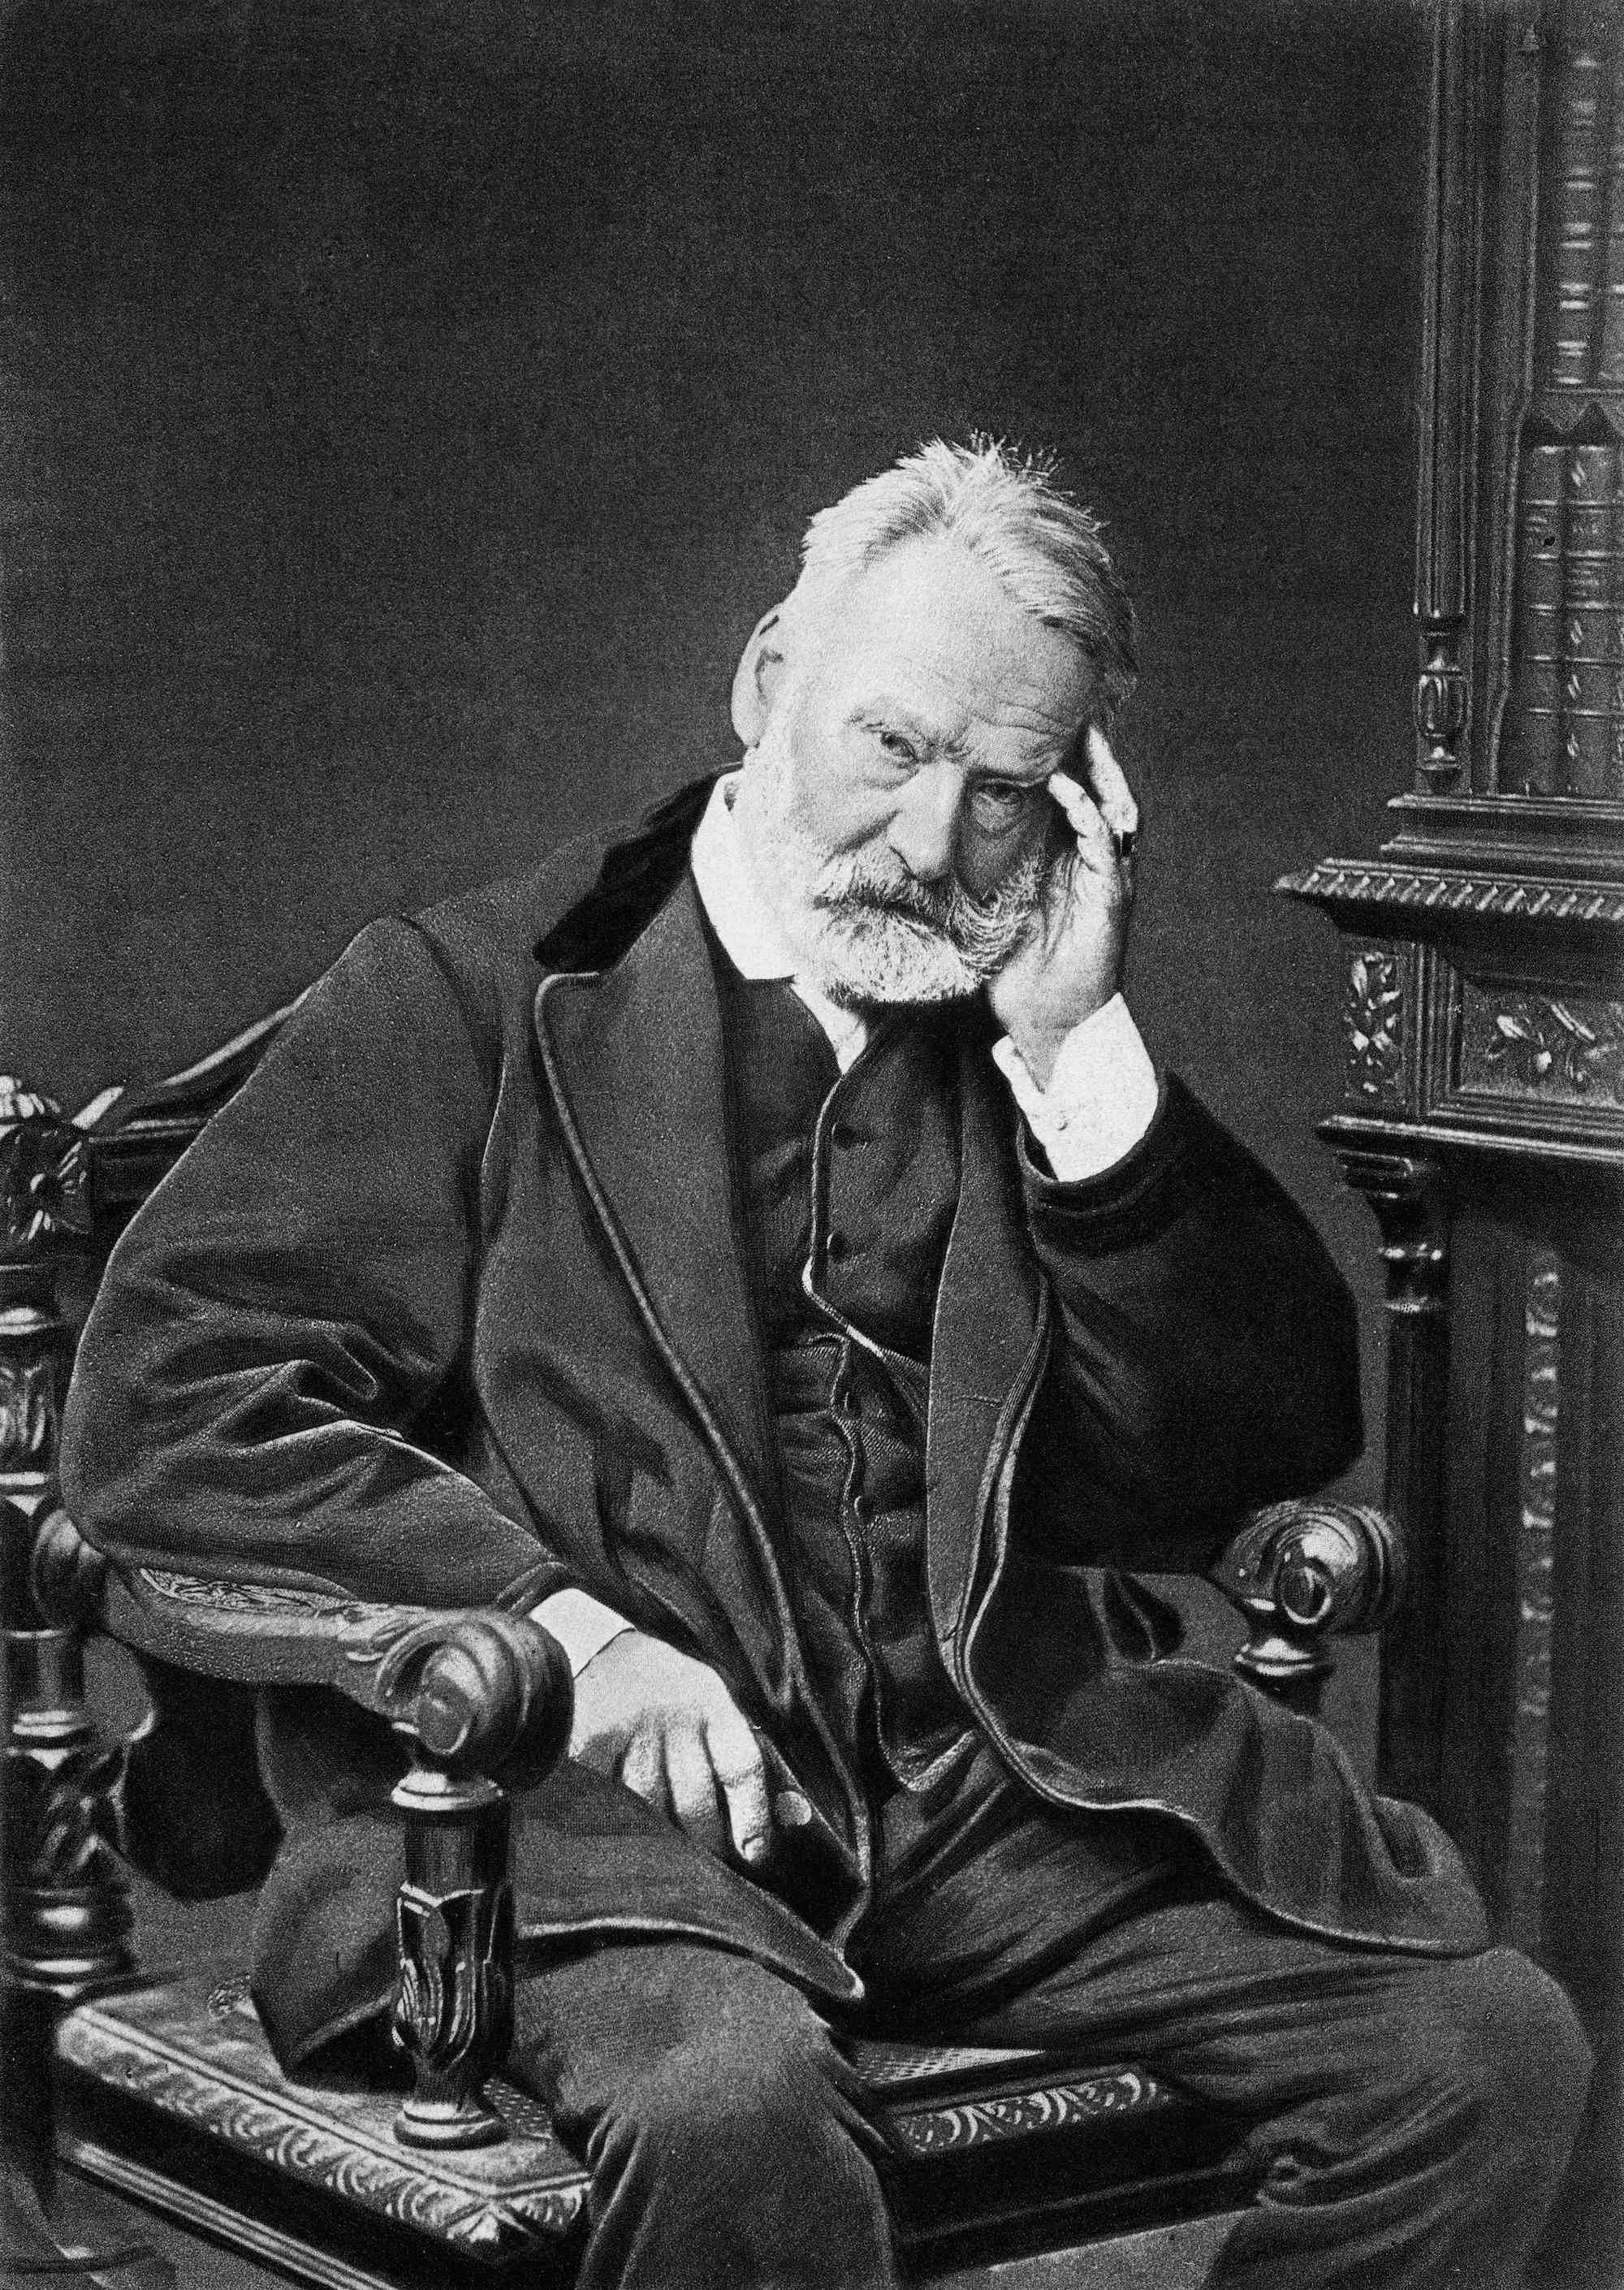 Victor Hugo sitting in a chair